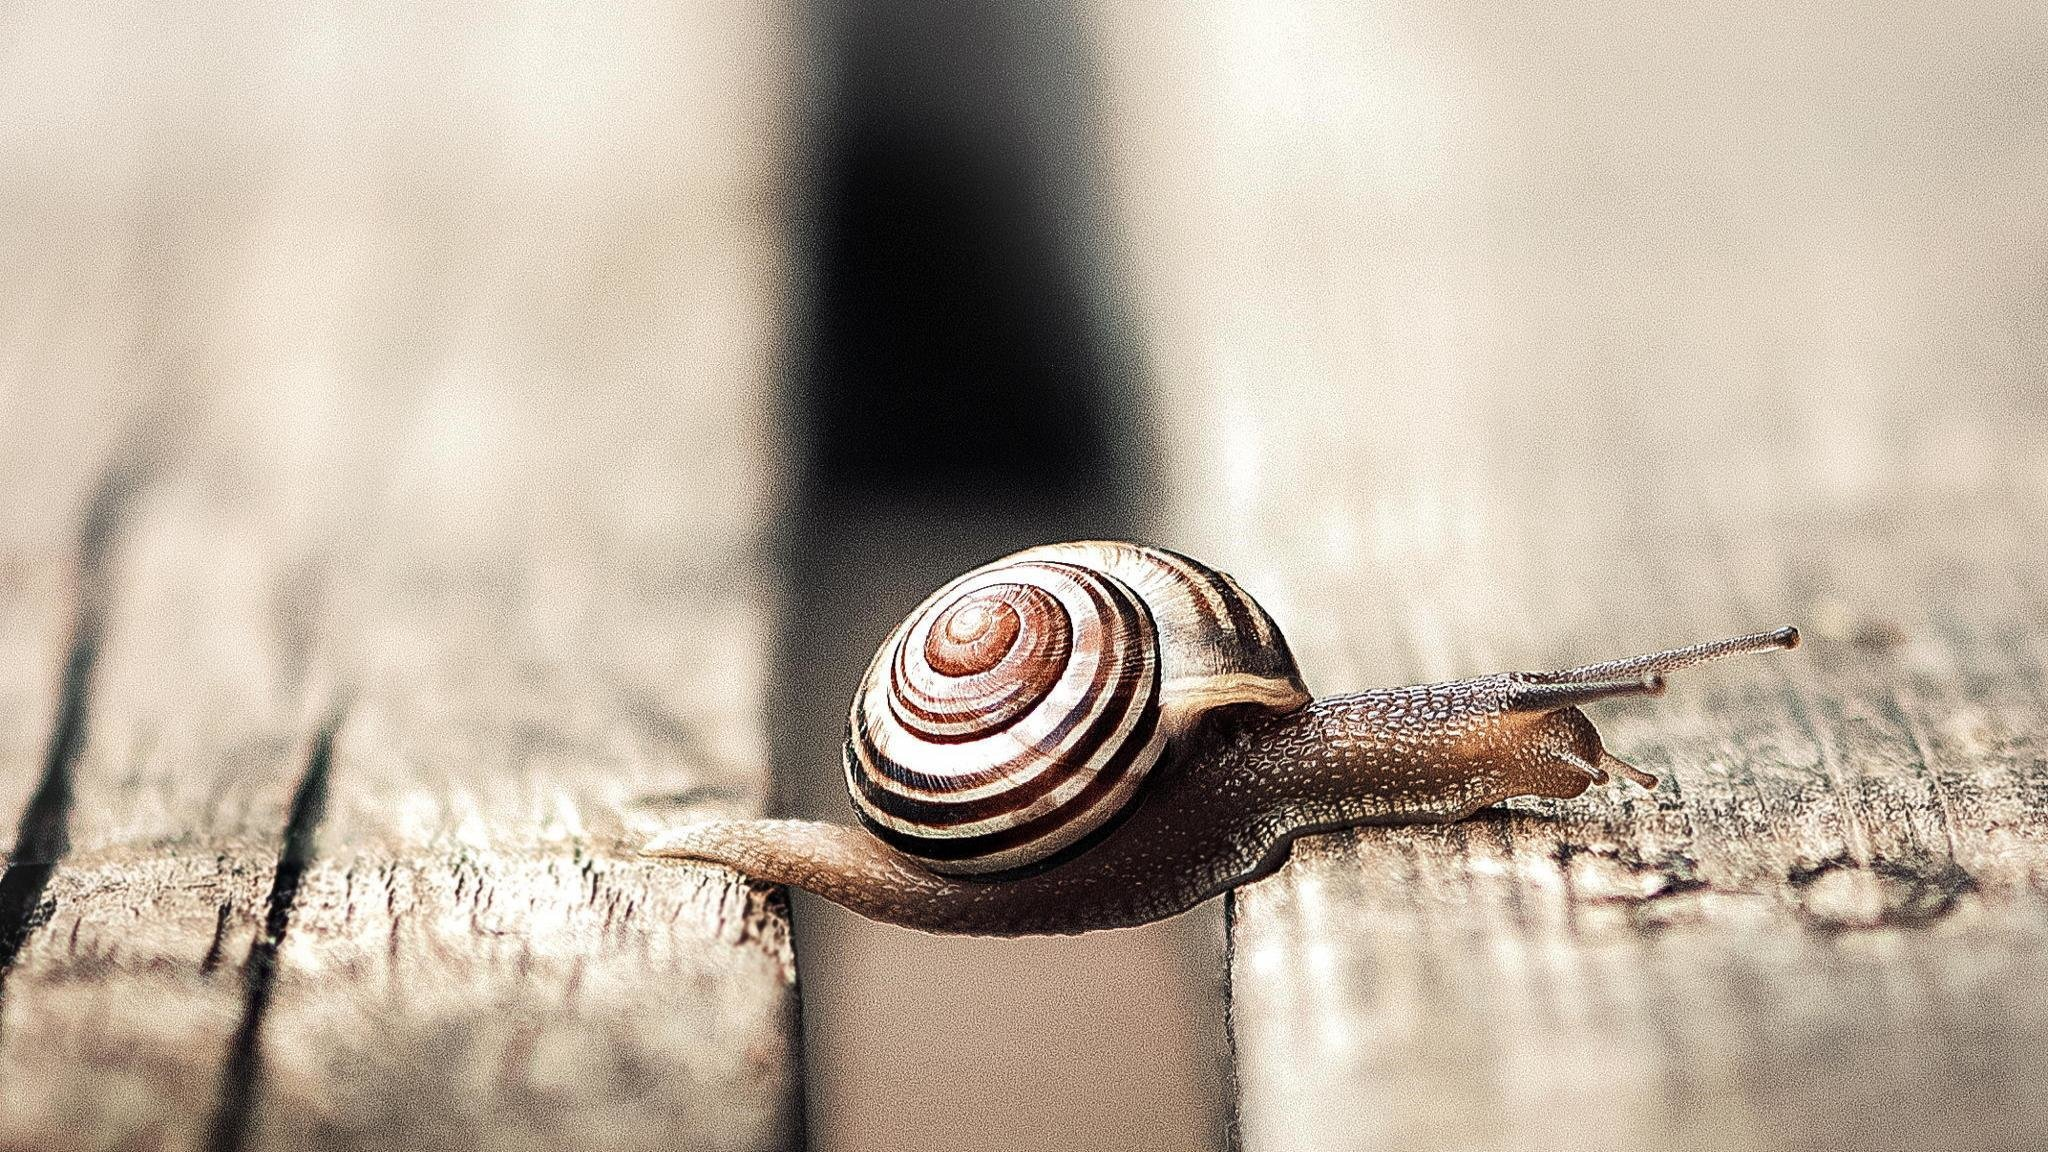 High resolution Snail hd 2048x1152 background ID:198875 for PC